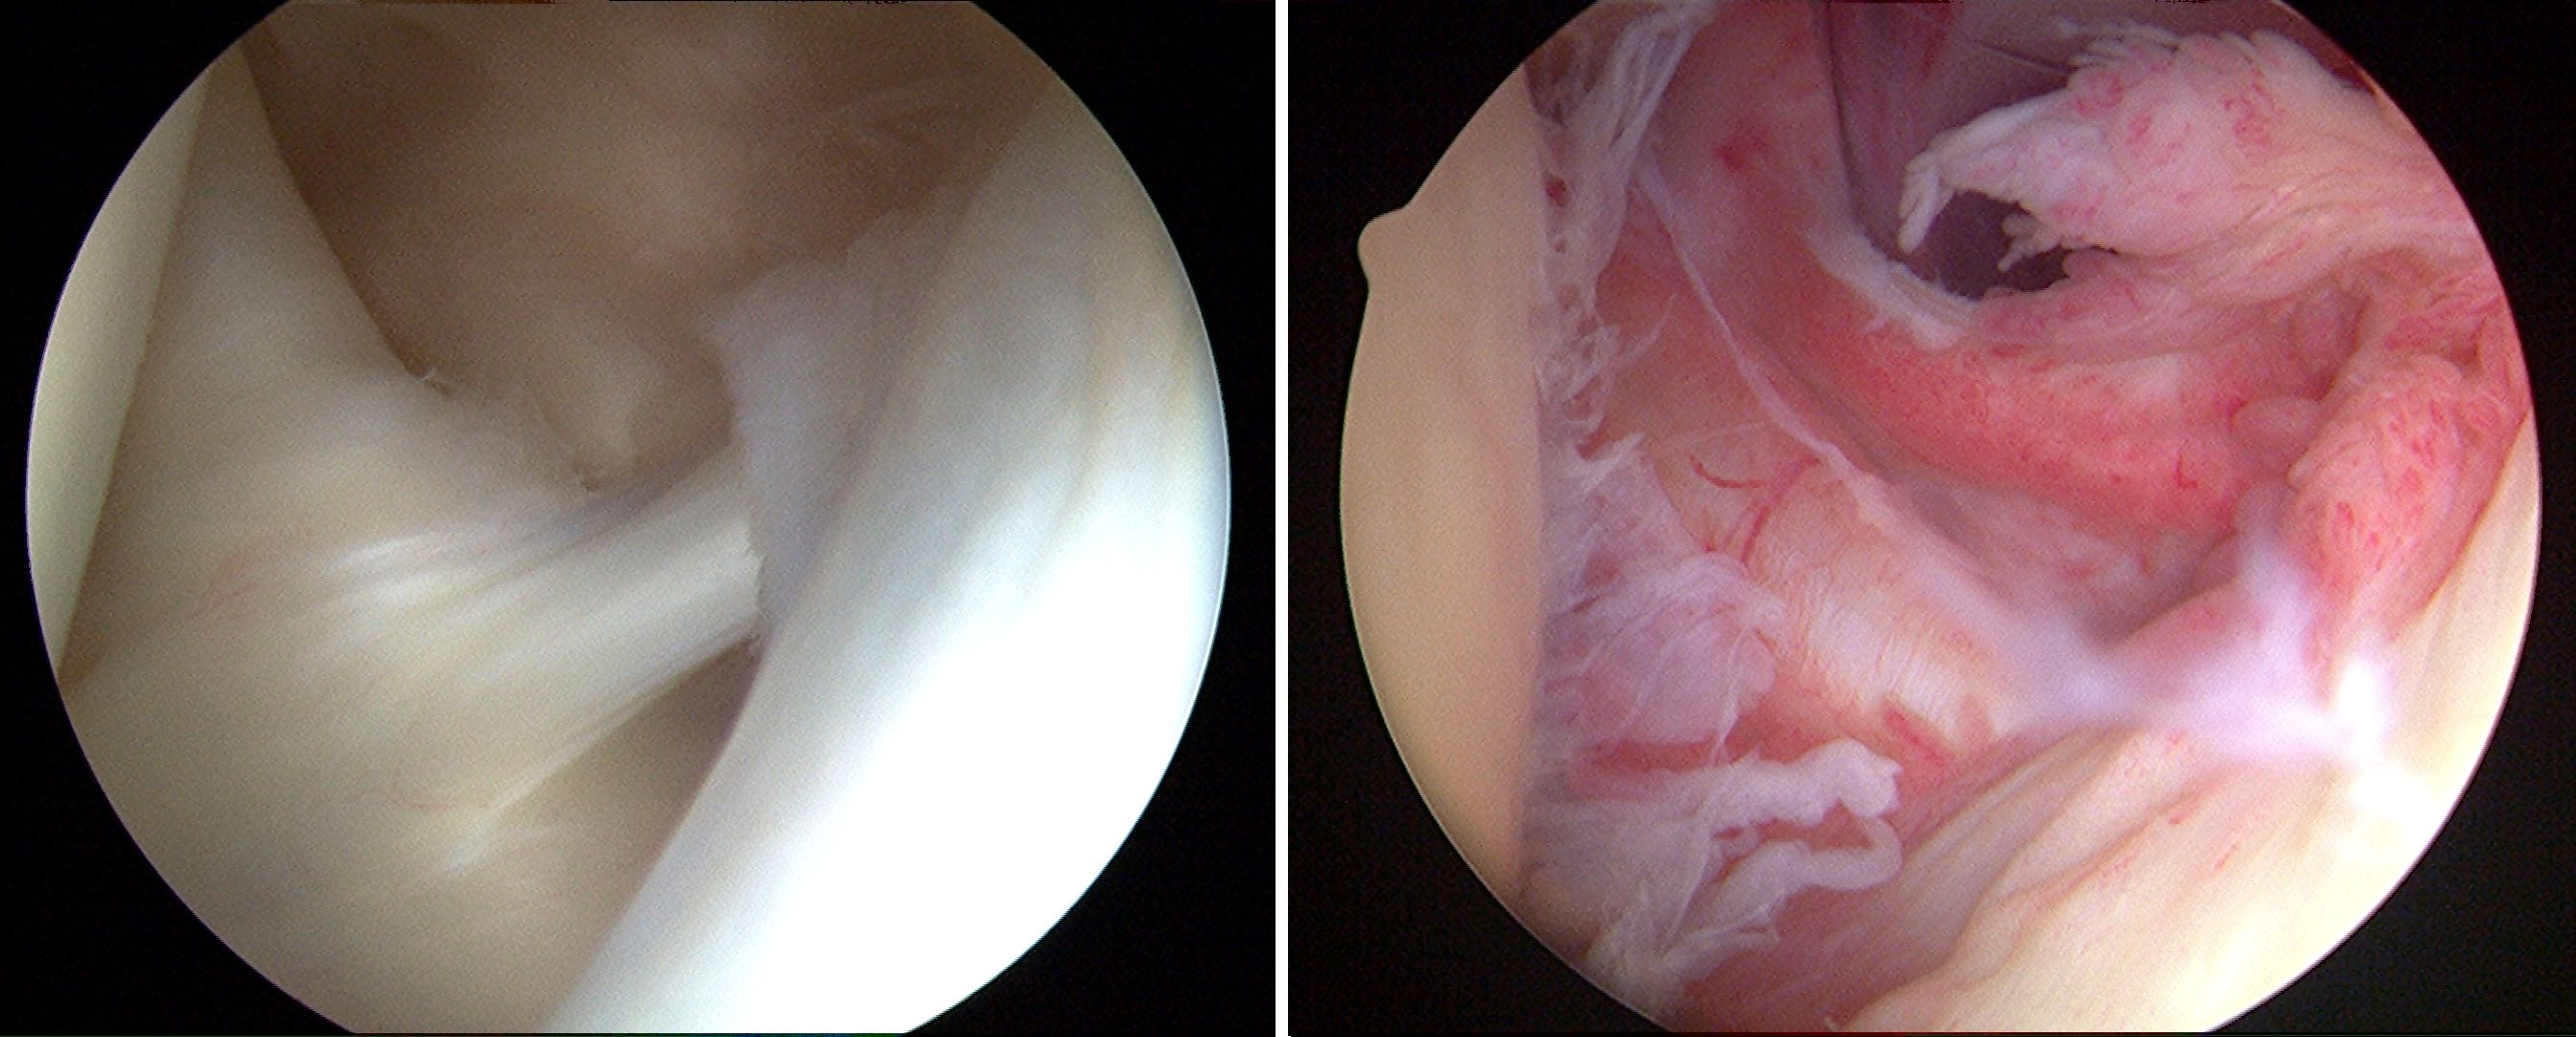 Arthroscopic photos of shoulder joint